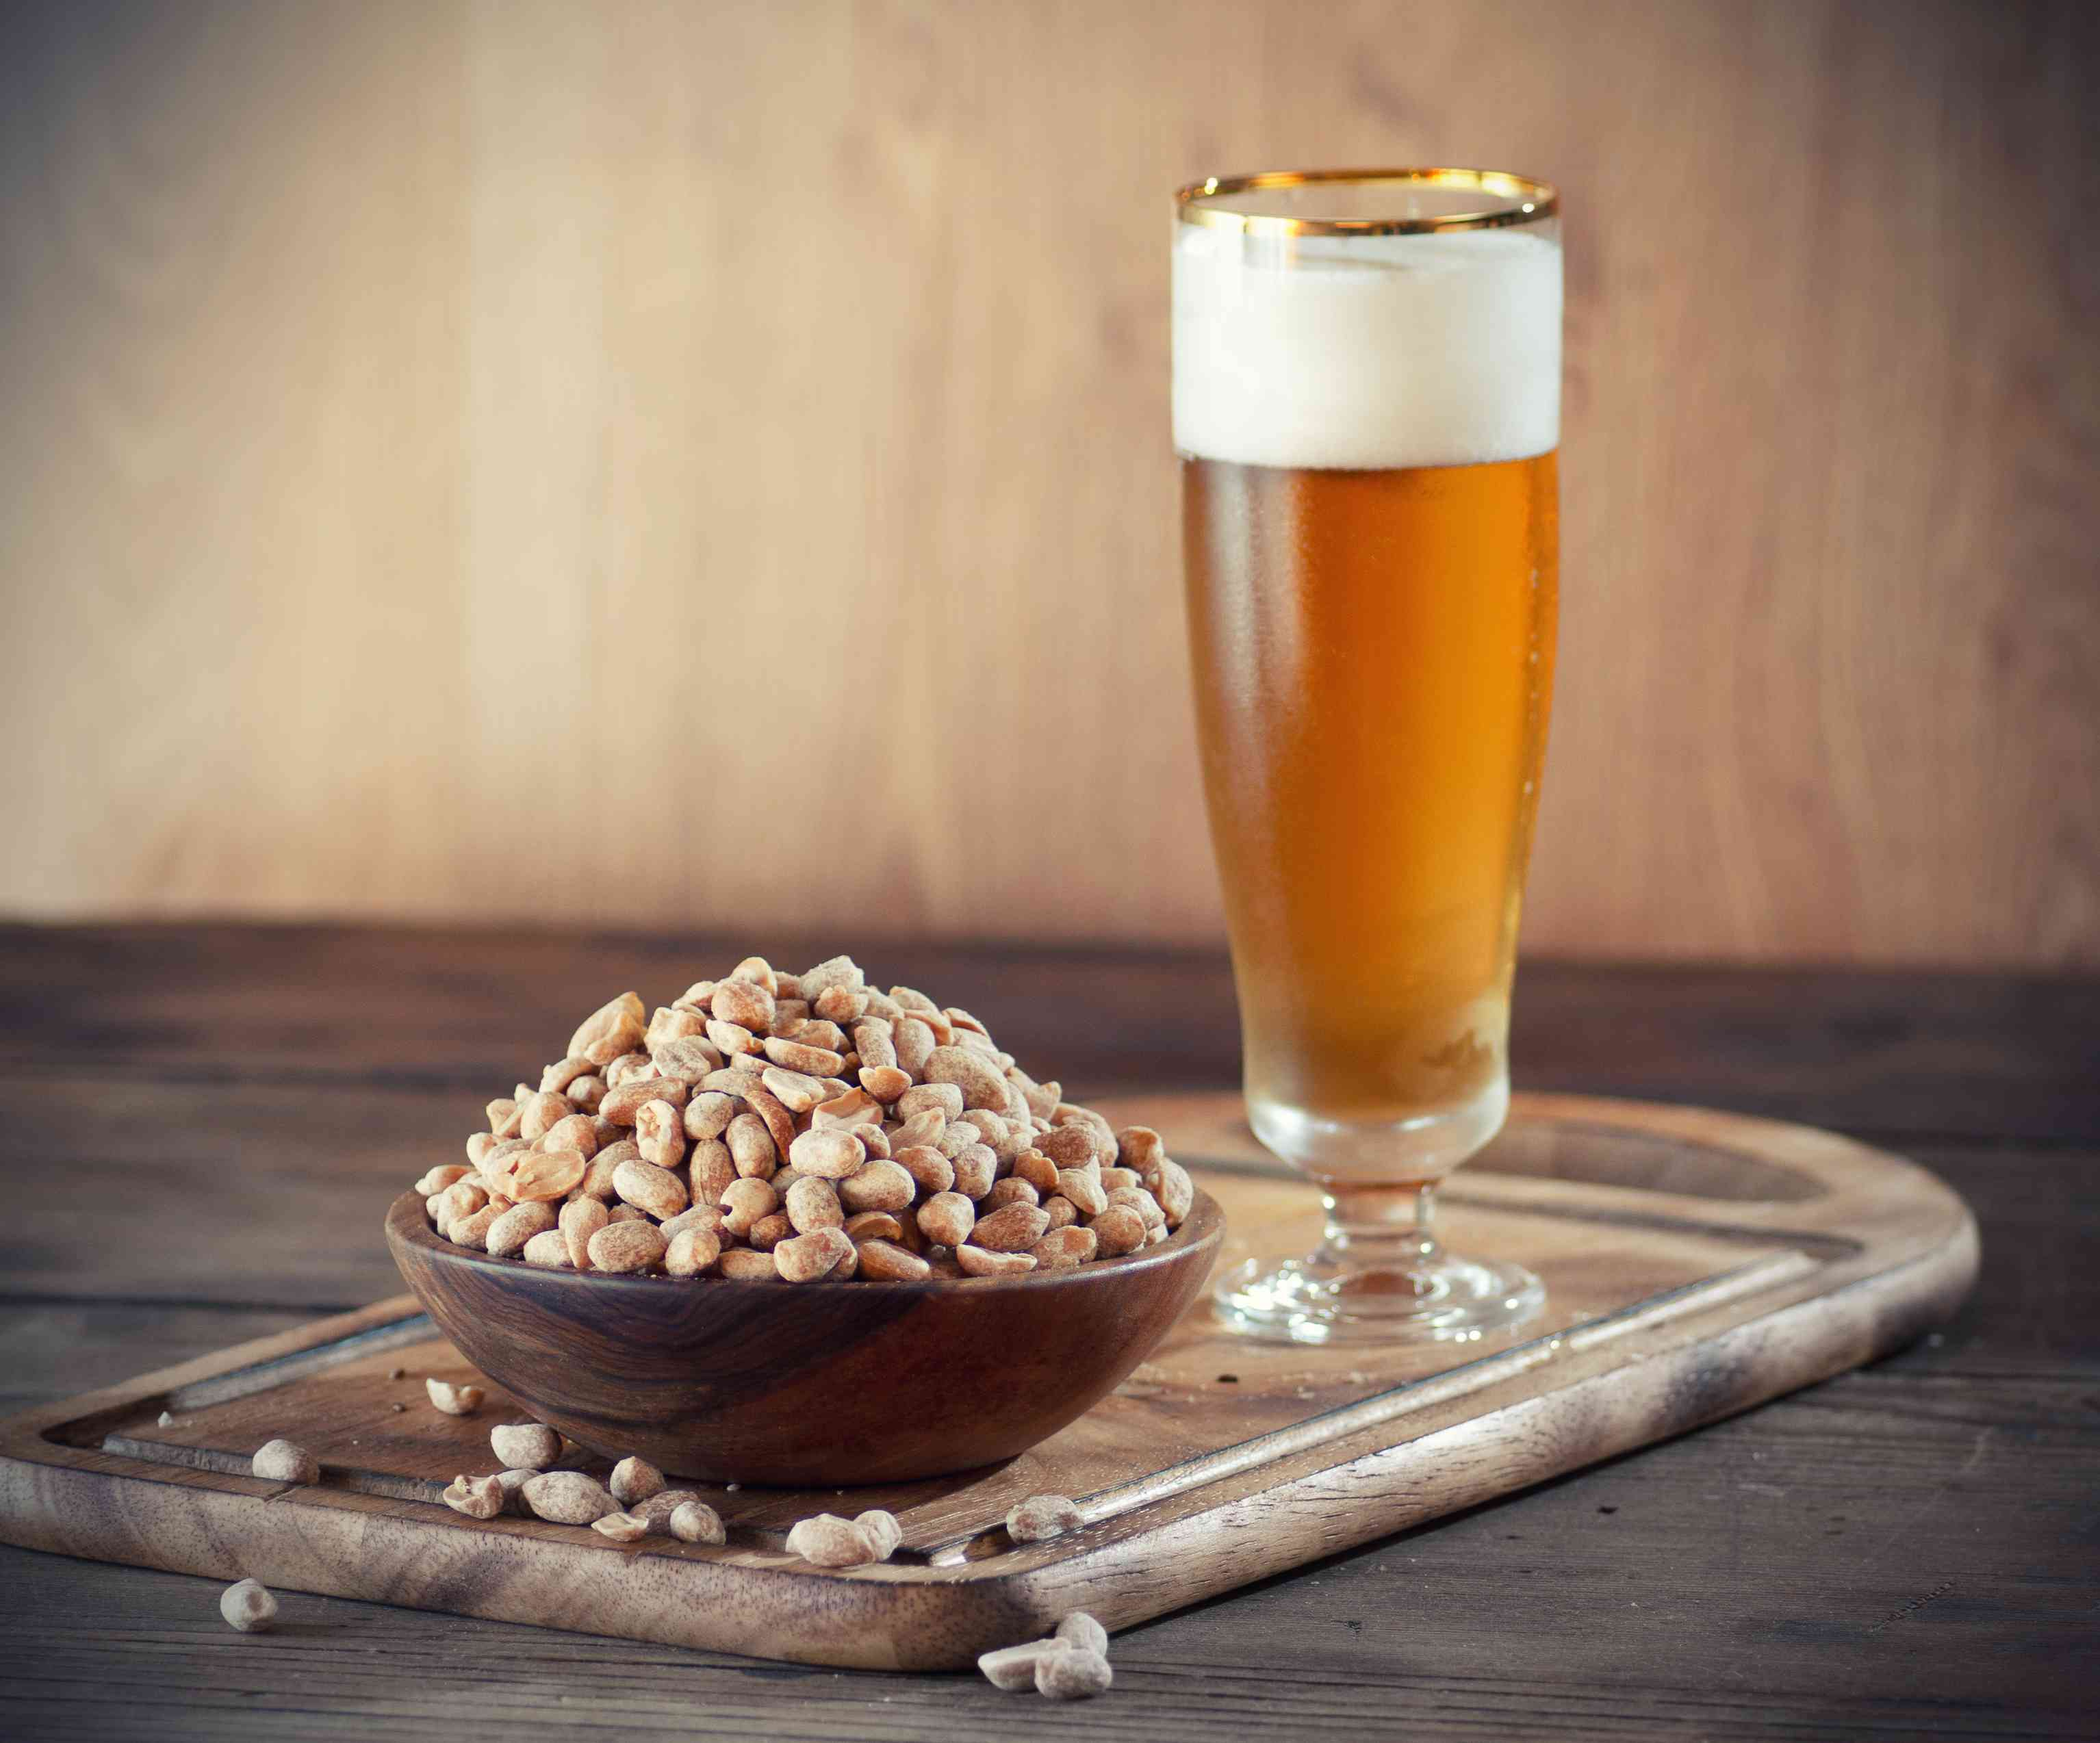 beer and bar nuts